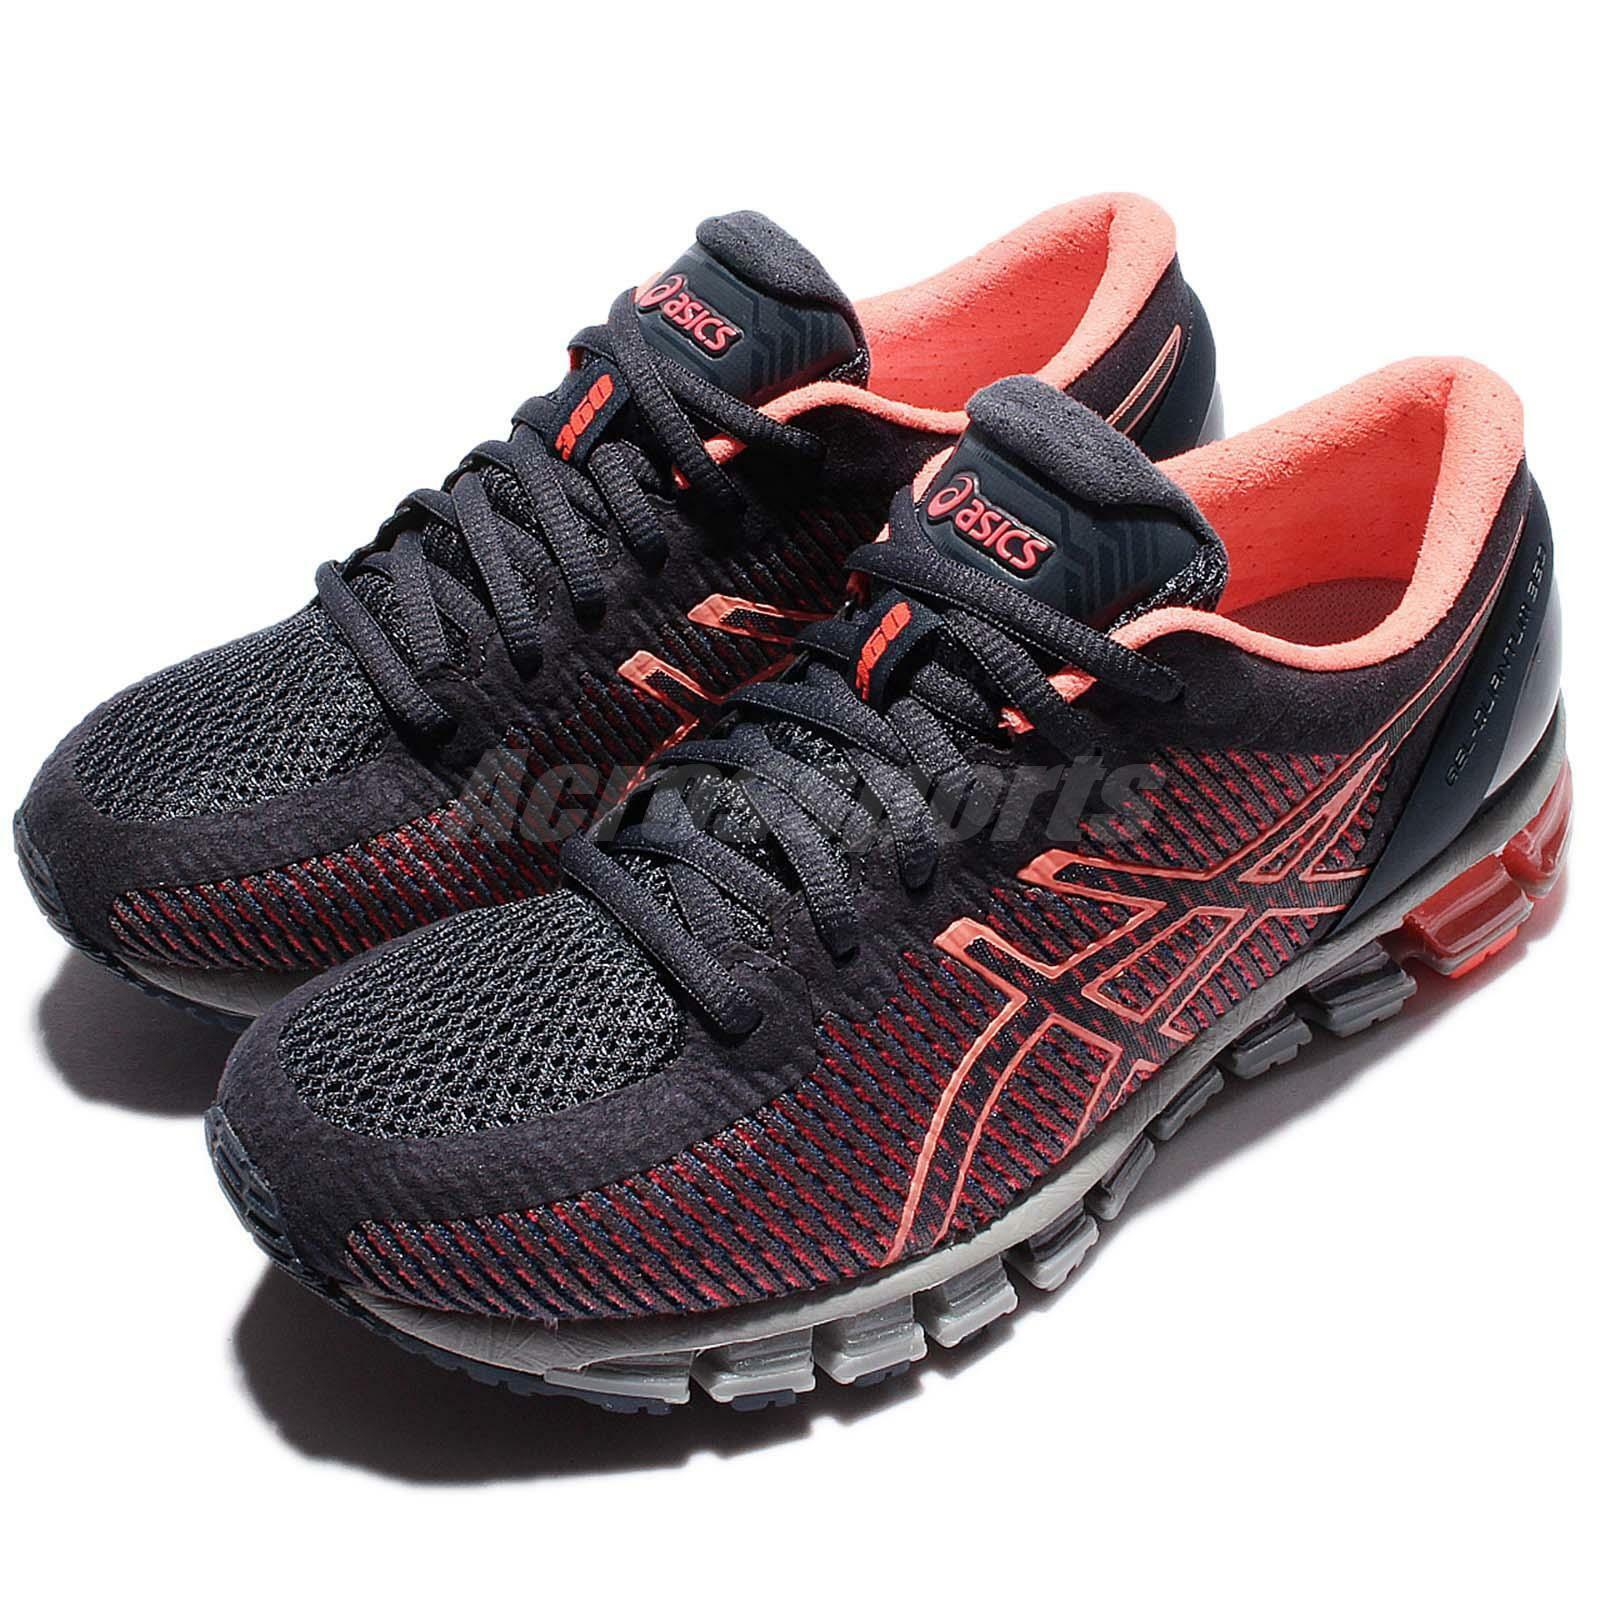 Asics GelQuantum 360 zapatos CM Chameleon Gris Mujer Running zapatos 360  Sneakers T6G6N5806 fc6651